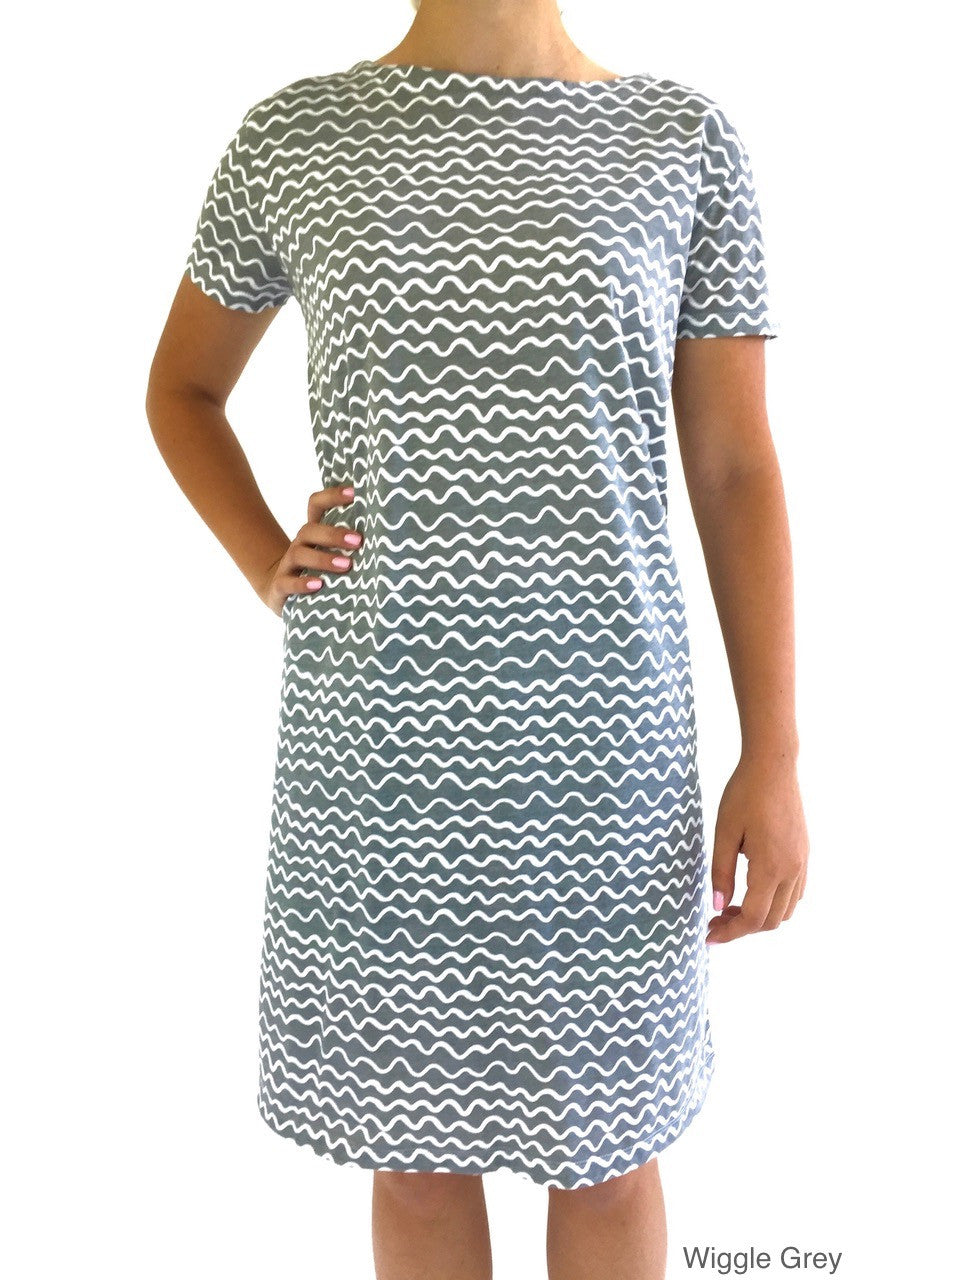 See Design Knit Dress Wiggle Grey cotton coverup by Donna Gorman